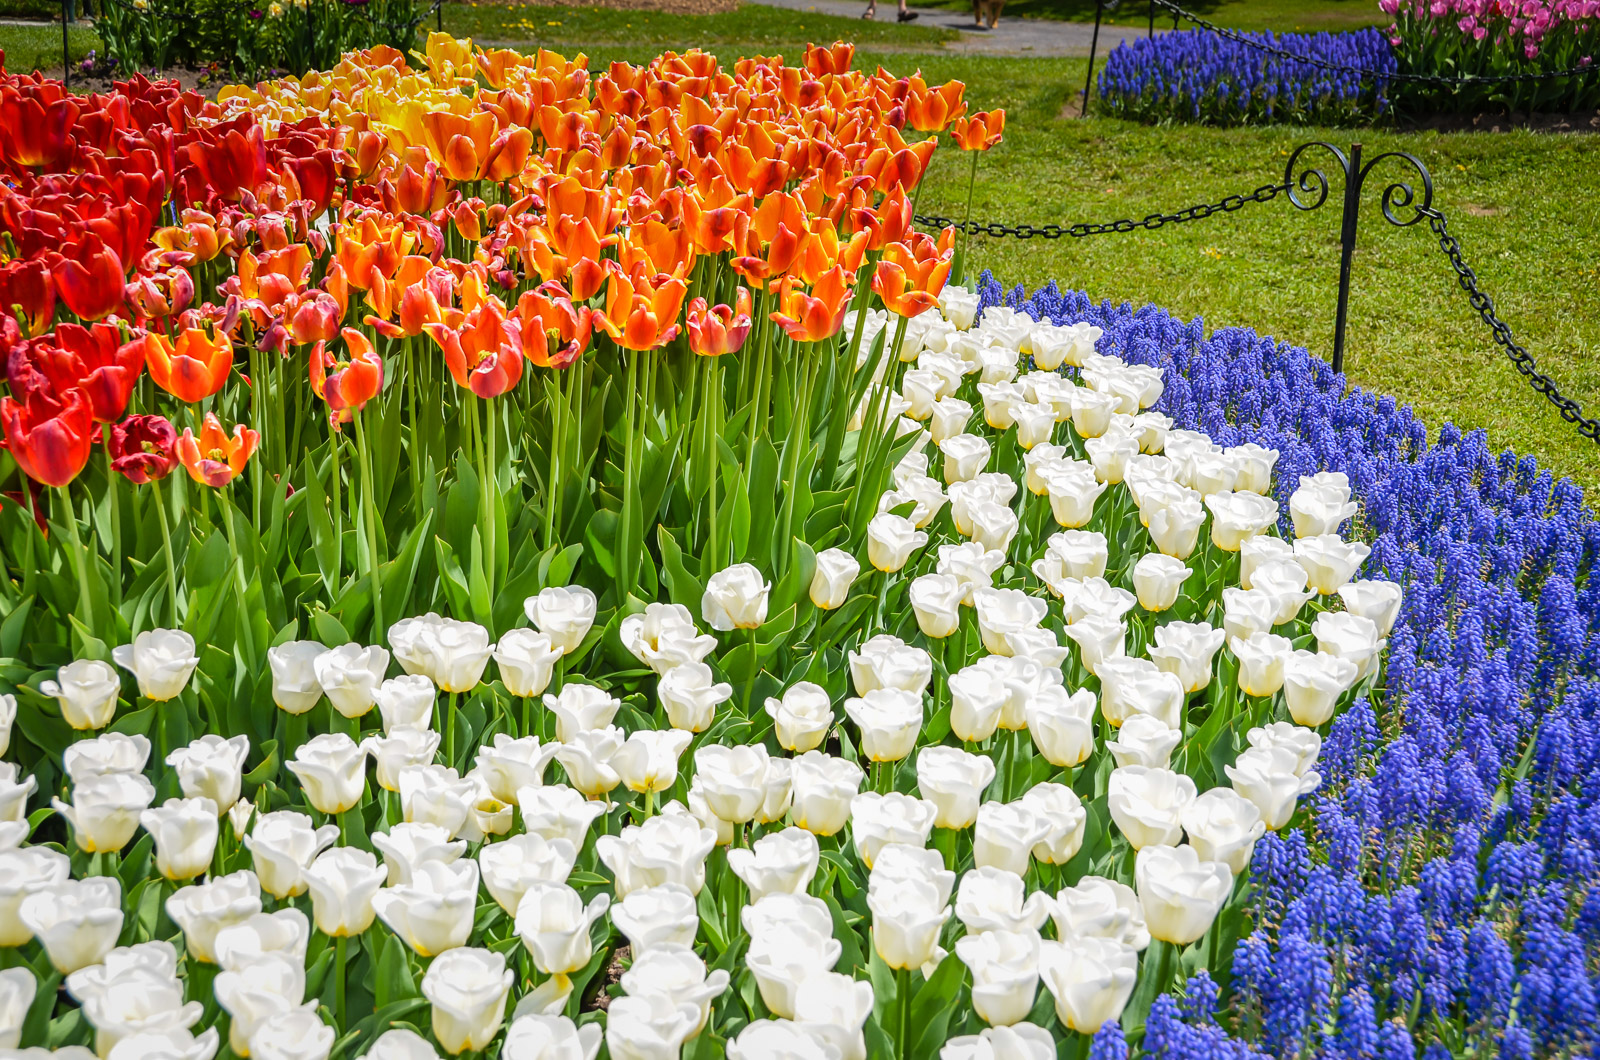 100 000 Tulips Blossom In Washington Park Albany Ny